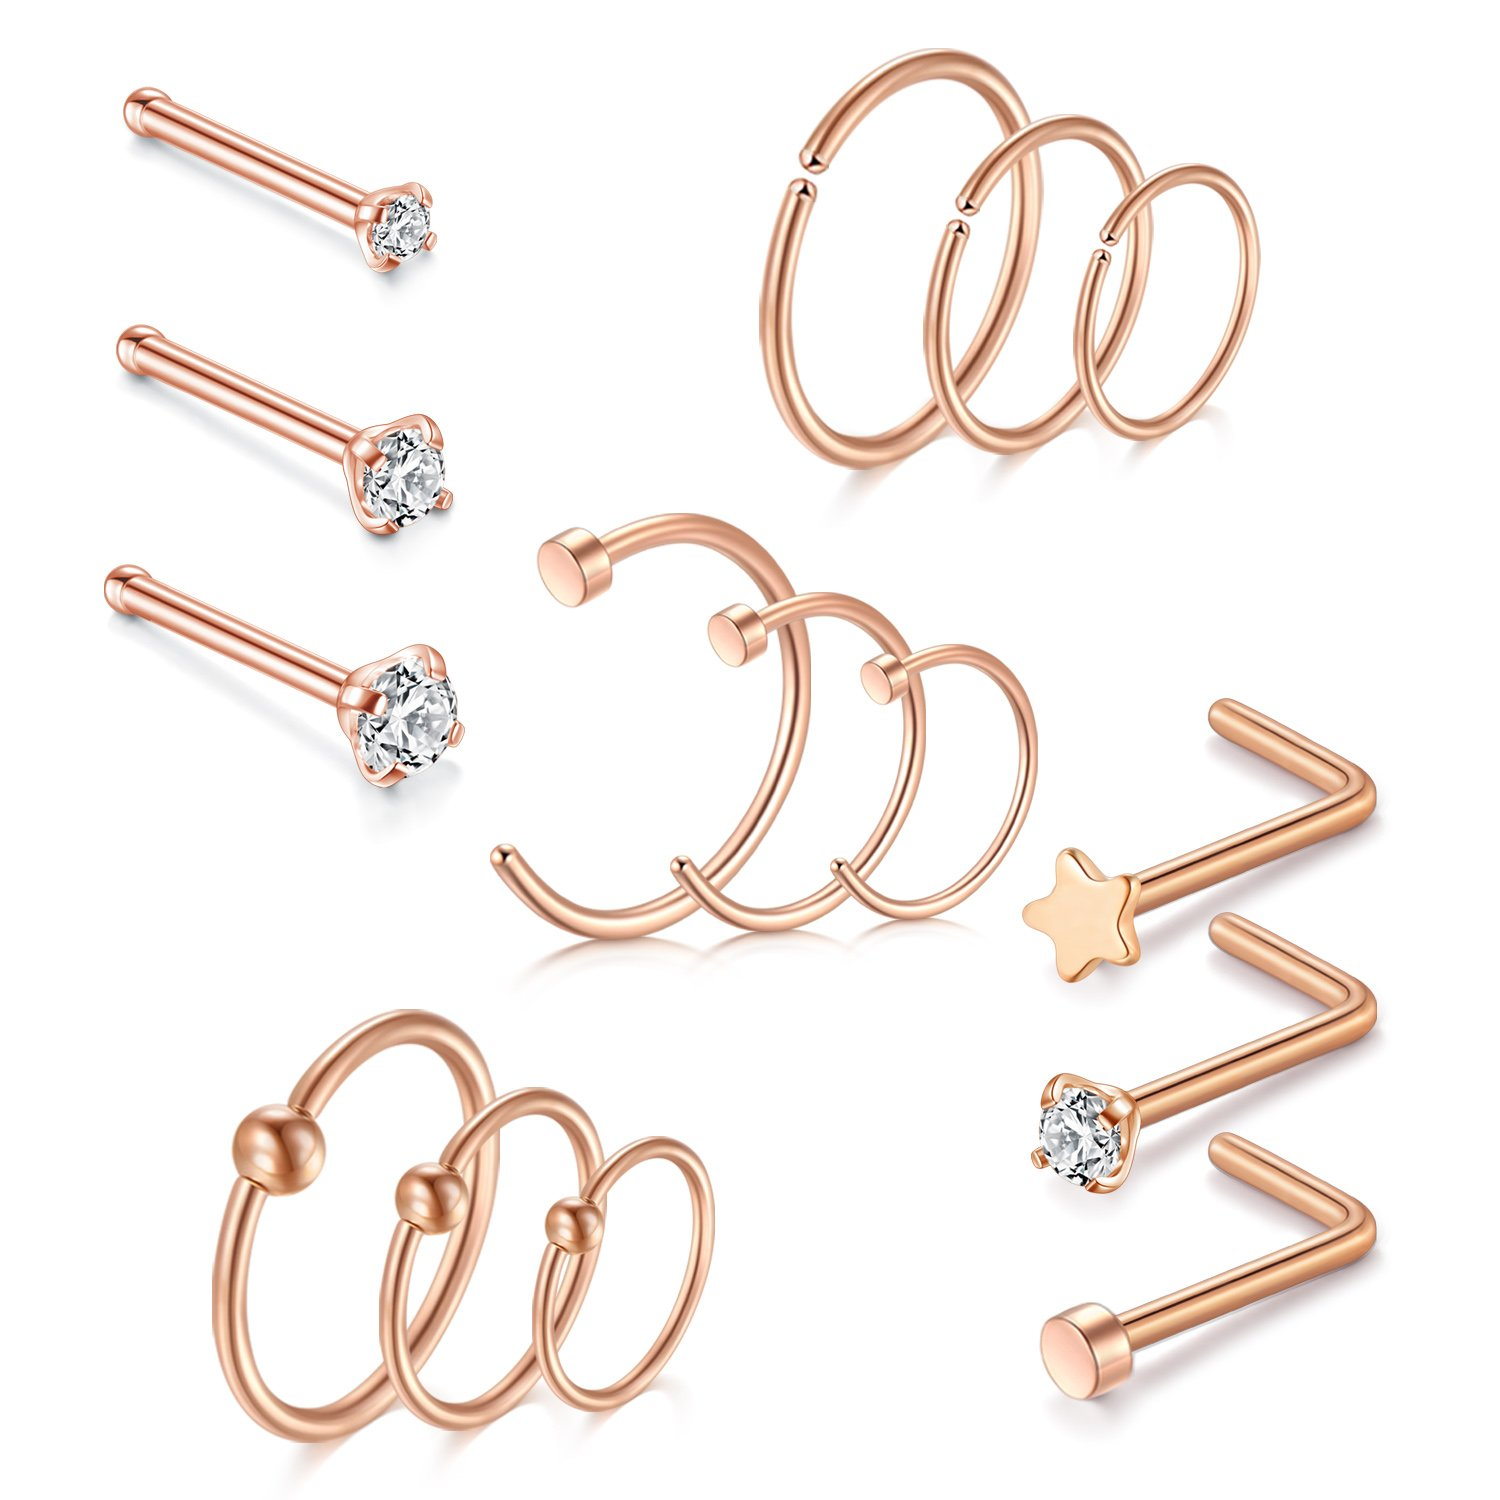 vcmart Nose Rings Hoop-20G 8mm 10mm 12mm Fake Nose Rings 316L Surgical Steel Helix Cartilage Tragus Earring Nose Rings Studs Piercing 1.5mm 2mm 2.5mm Rose Gold